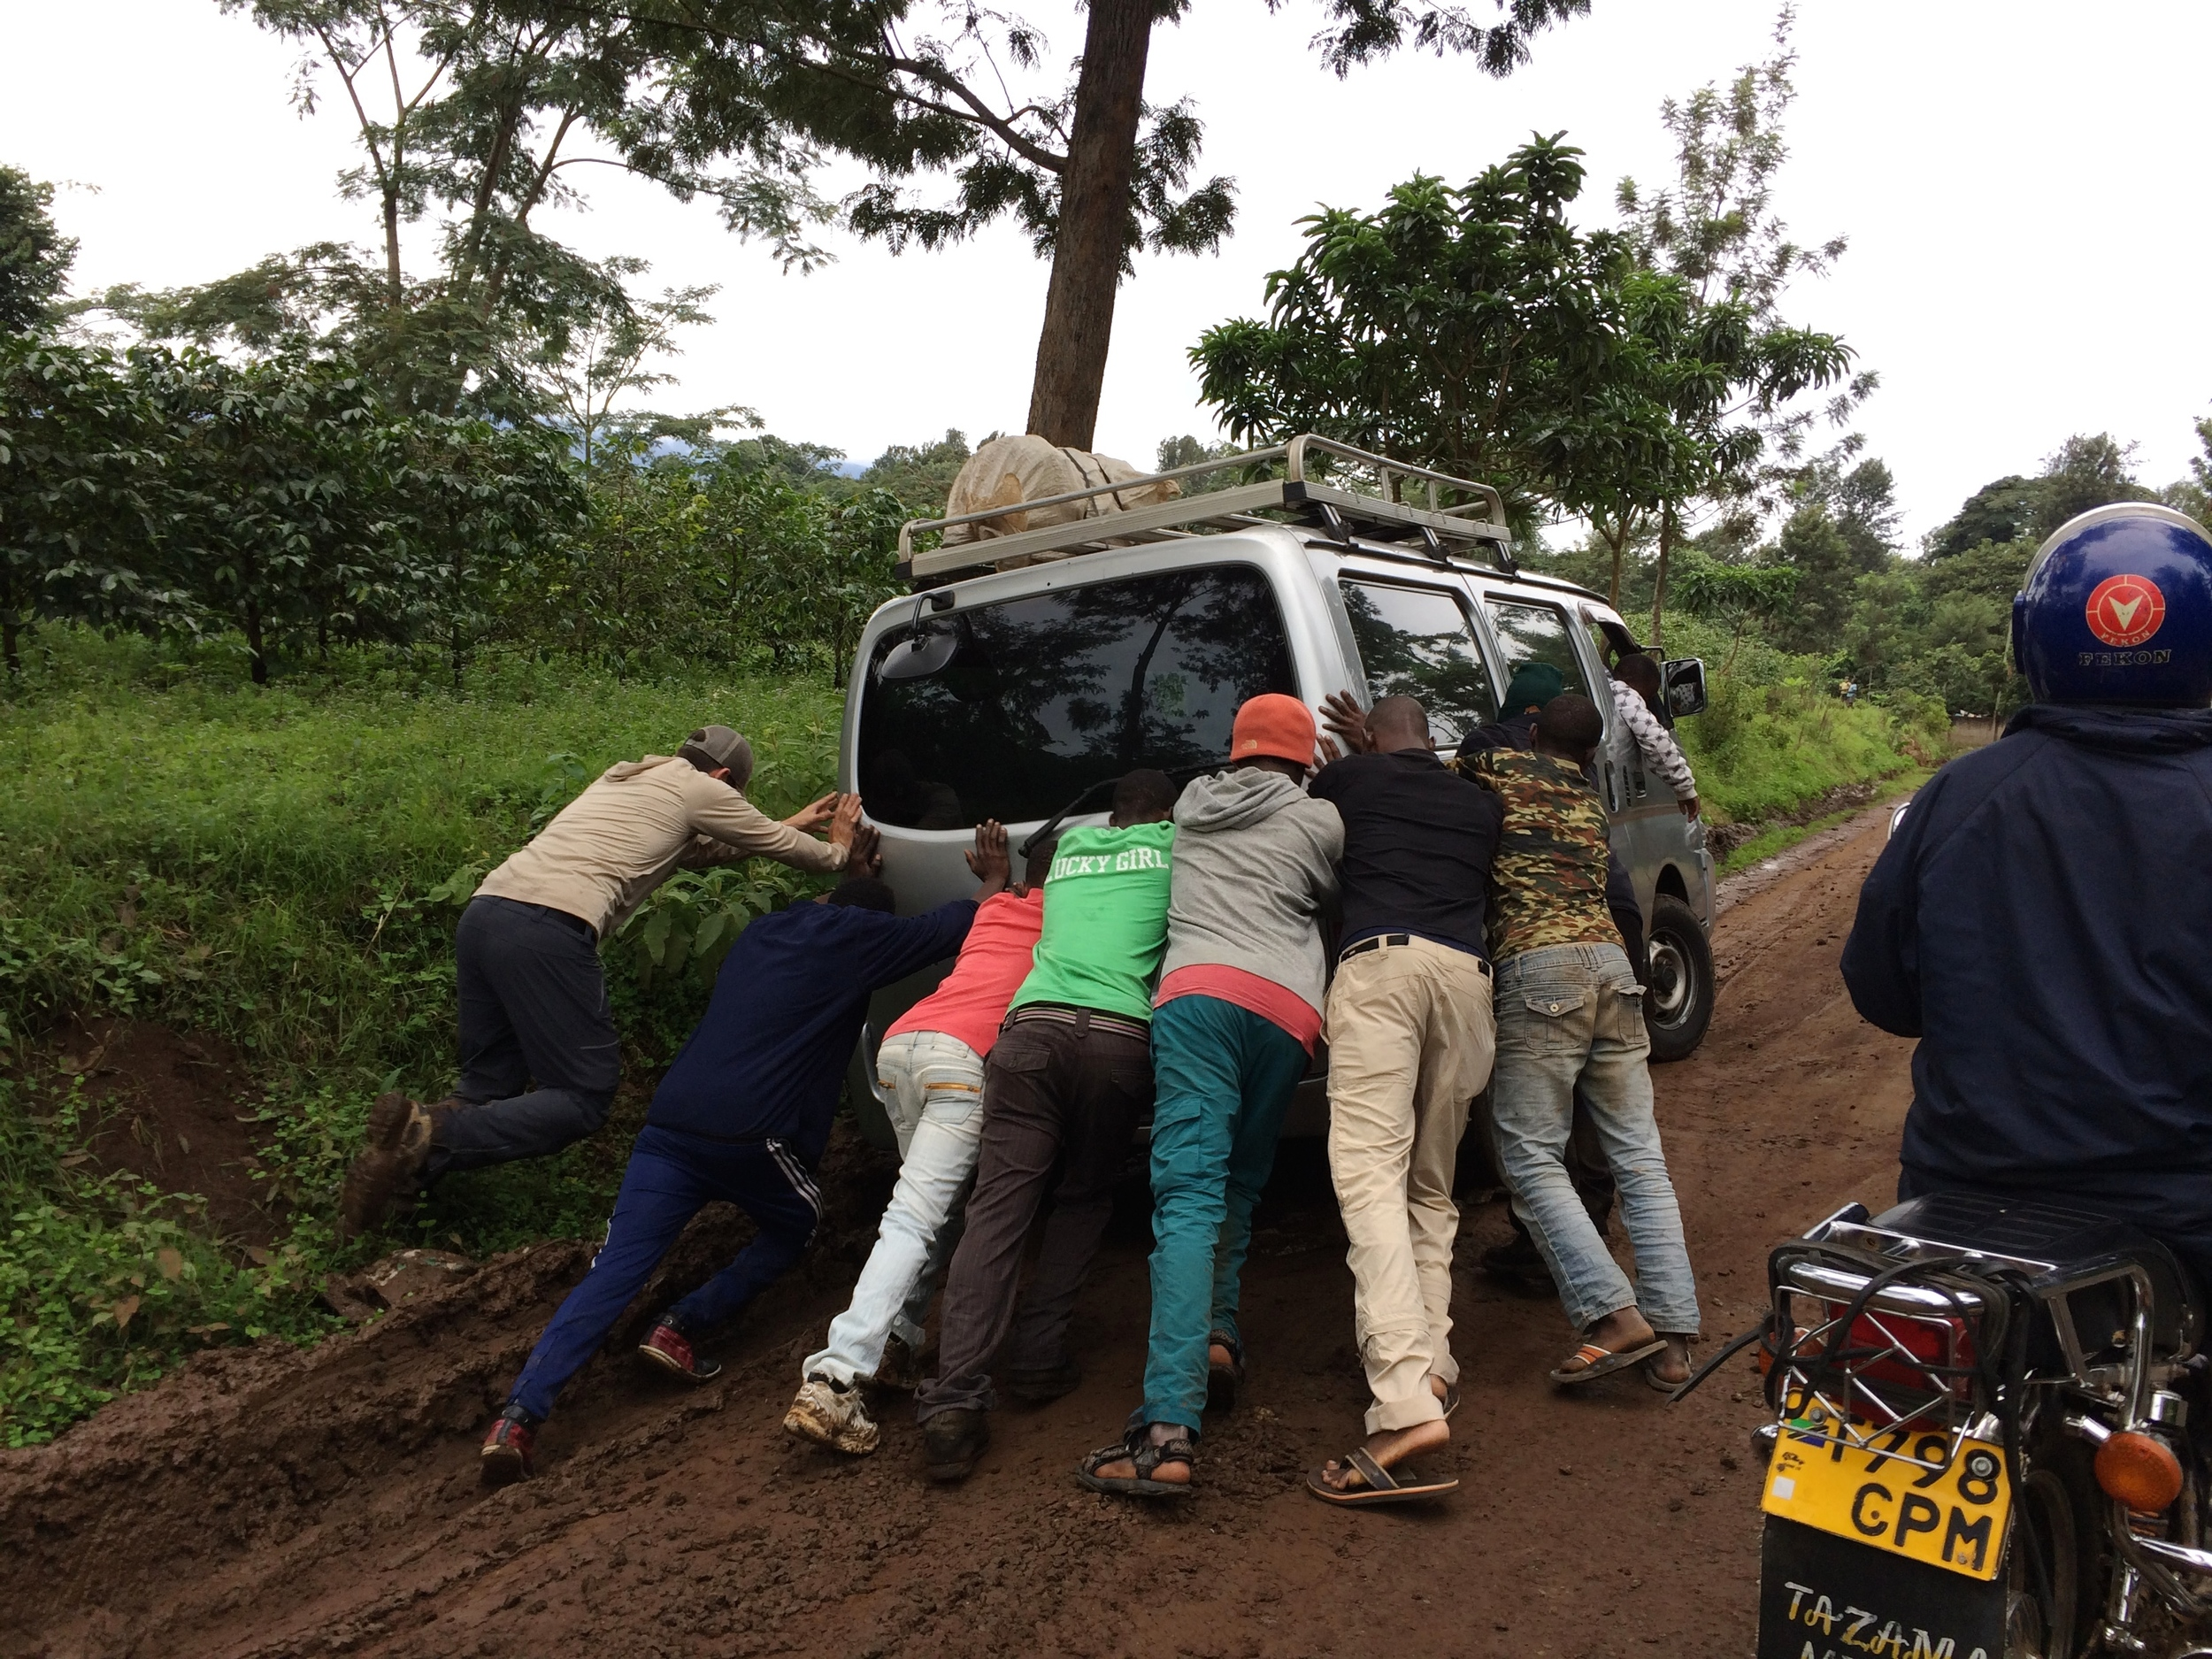 A typical road scene in Tanzania when our bus slid off the road